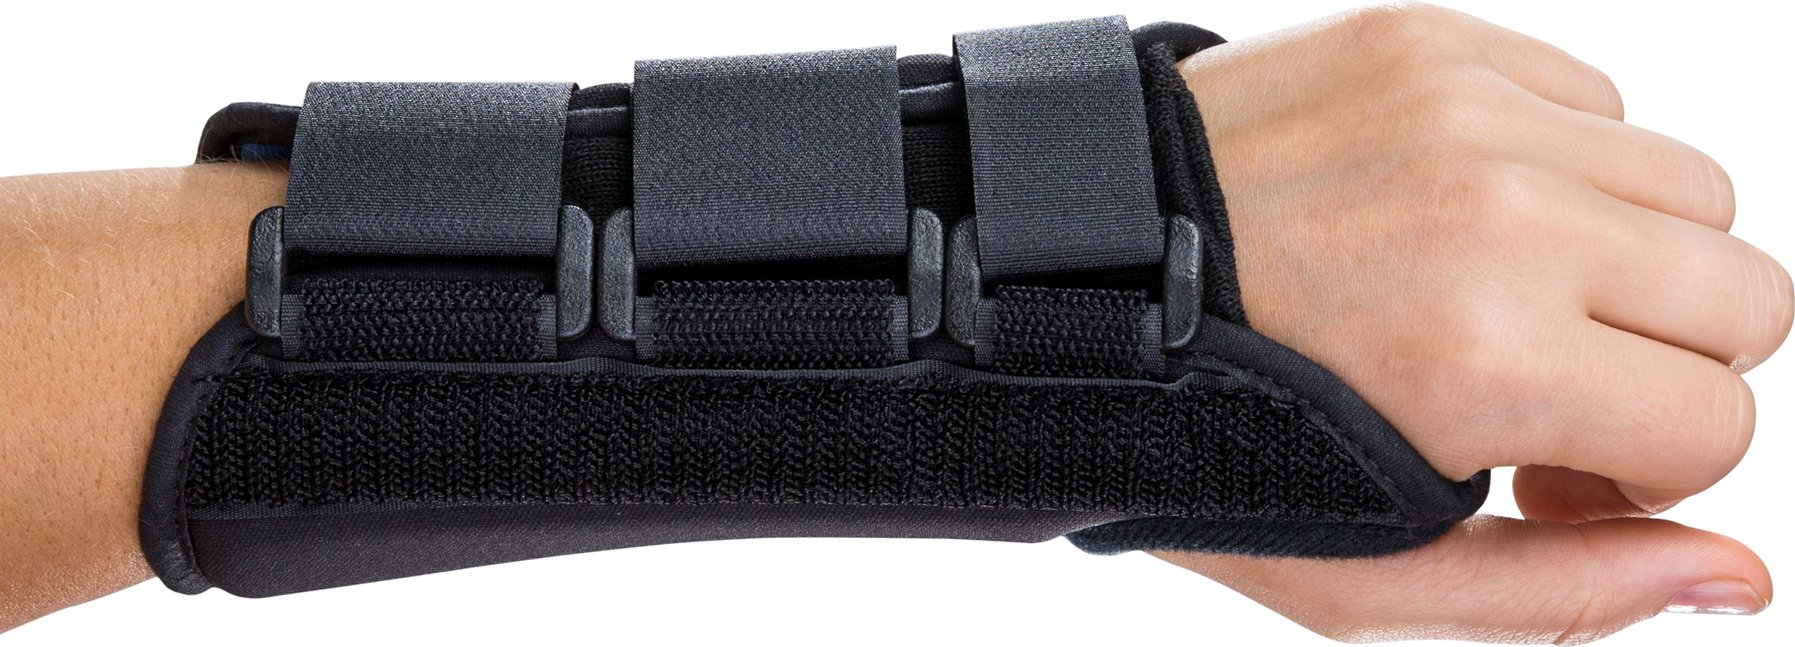 DonJoy DJ Orthodics ProCare ComfortFORM Wrist Support Brace: Left Hand, Medium